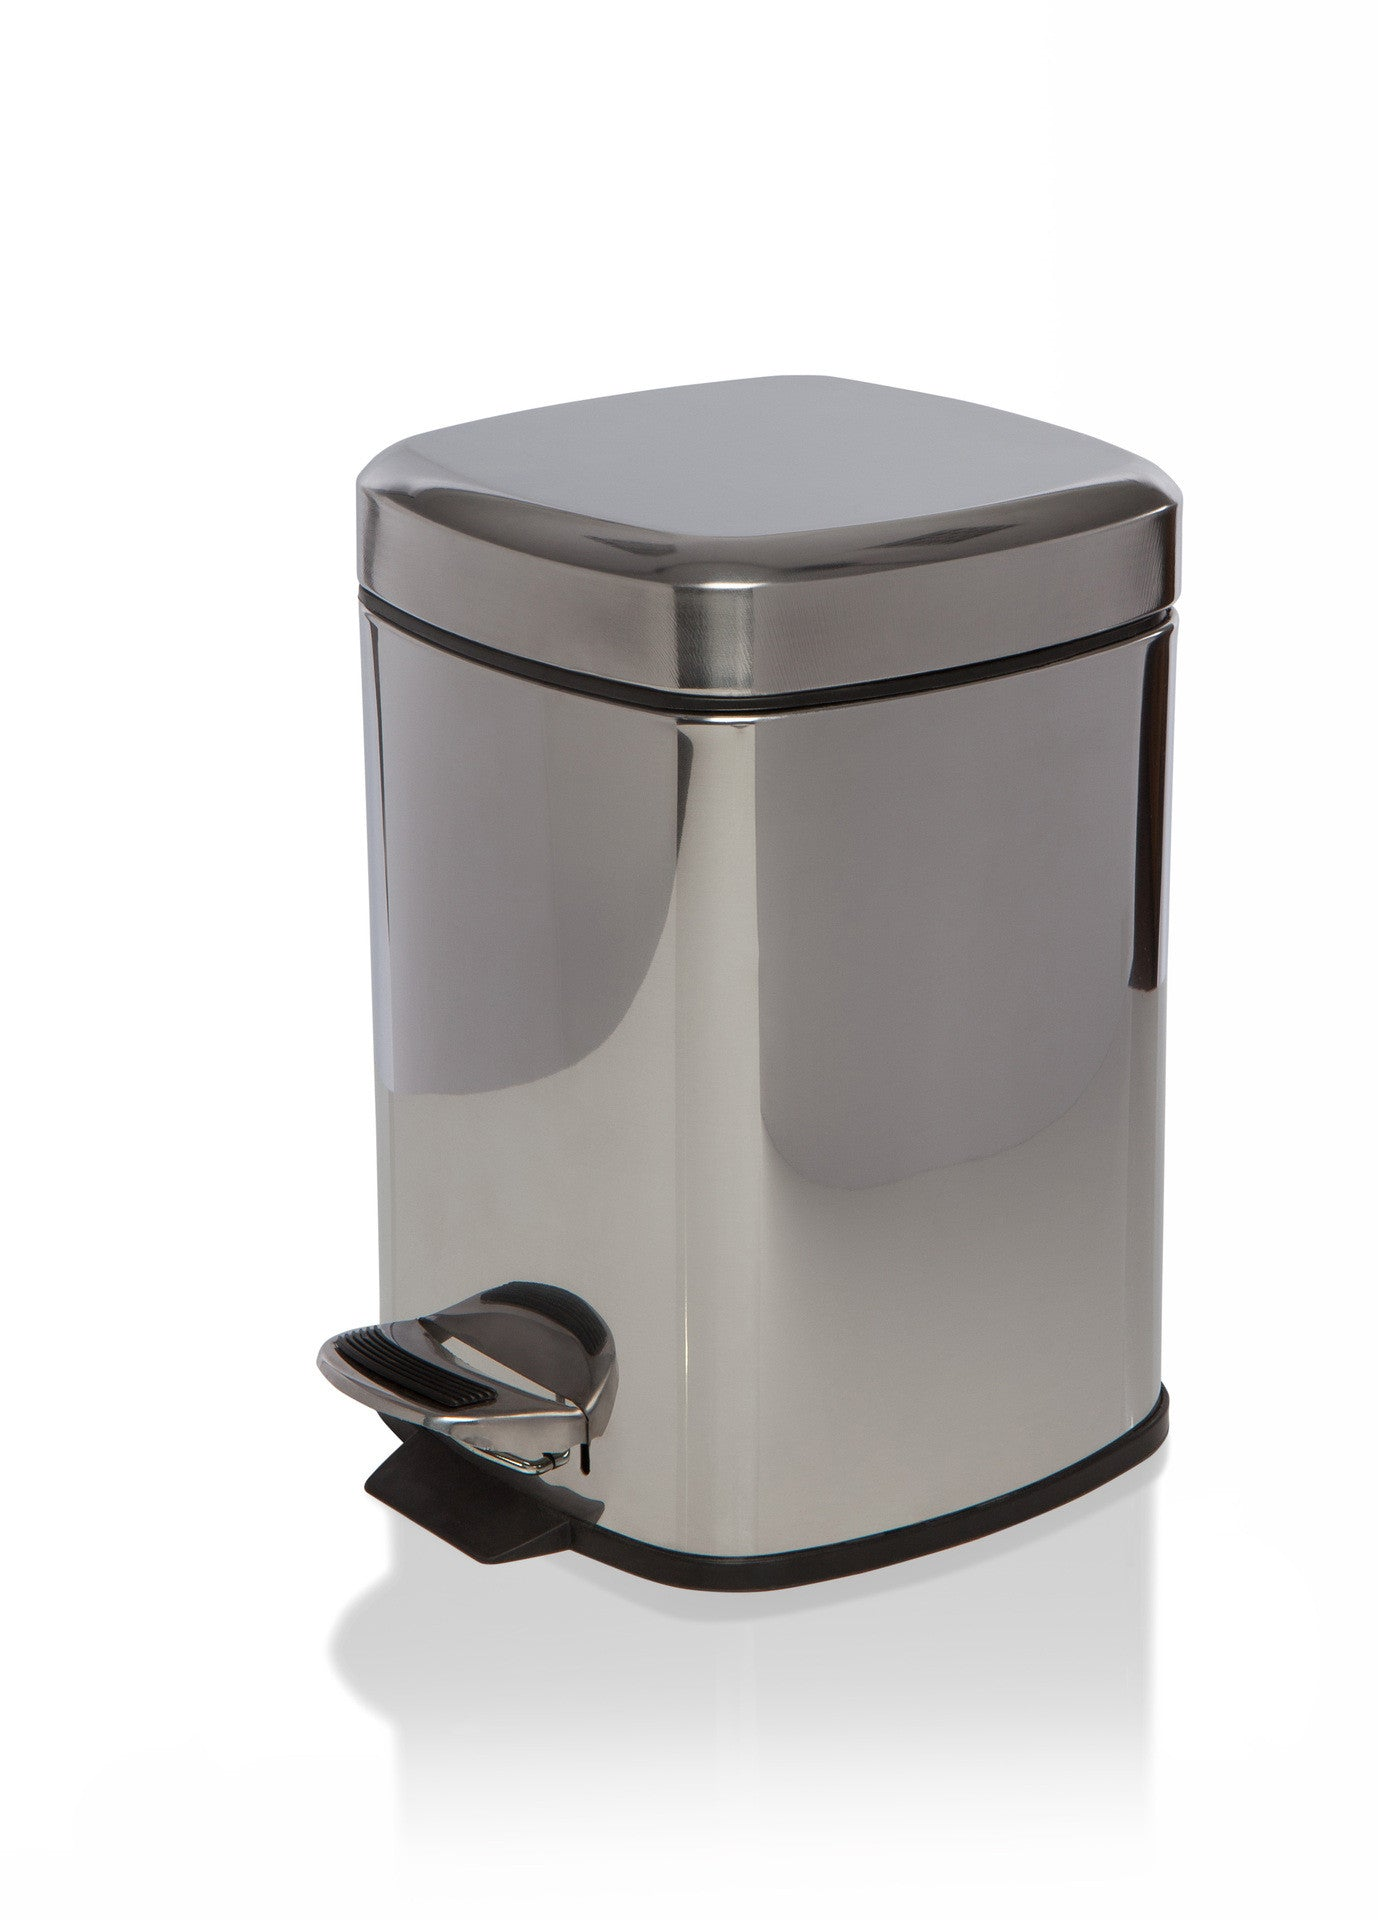 Sabichi 6L Soft Square Bin -172563 - Homely Nigeria